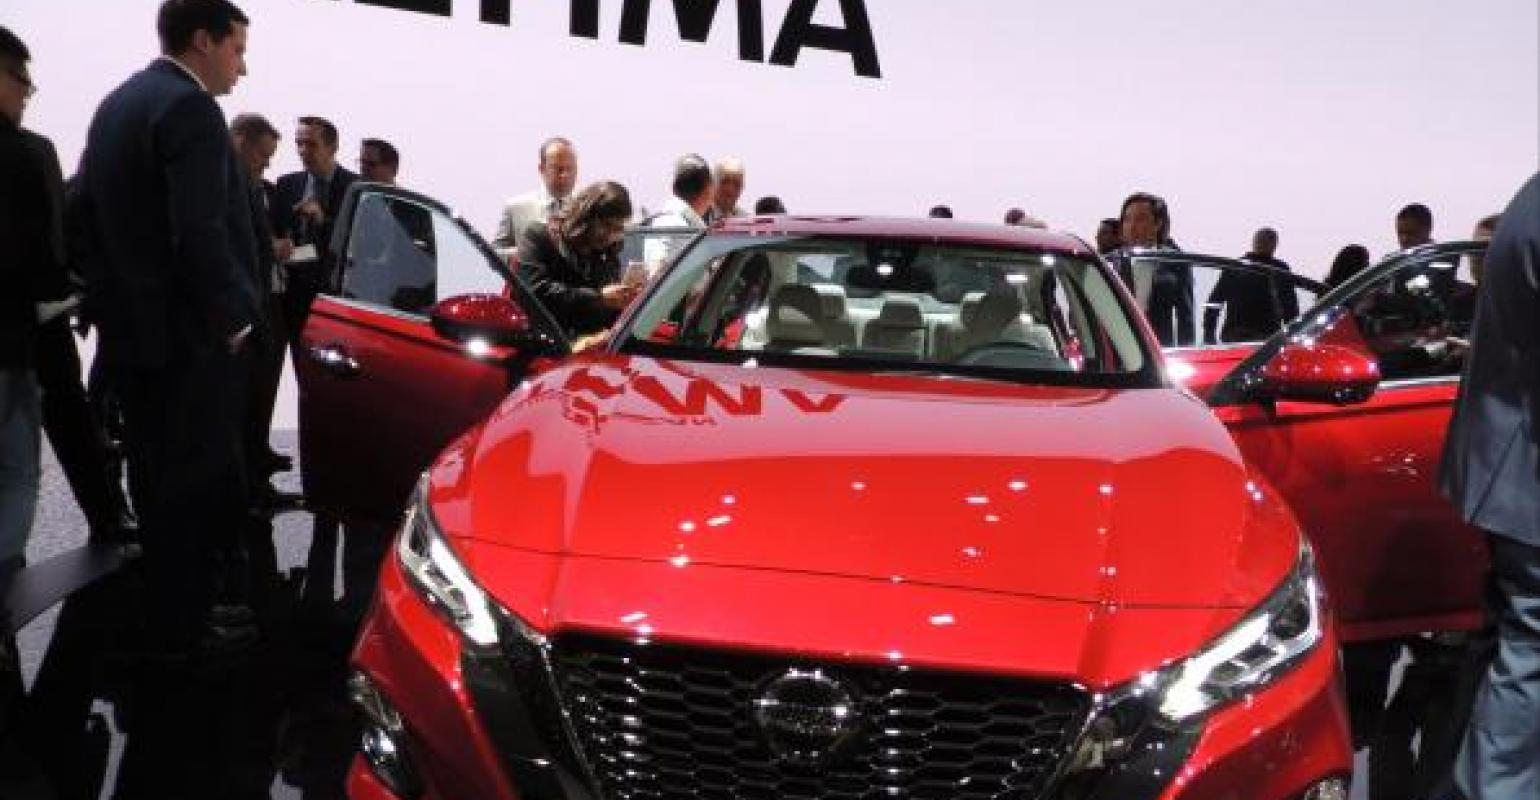 In Unveiling AllNew Altima Nissan Touts Cars As Cool WardsAuto - Show all cars